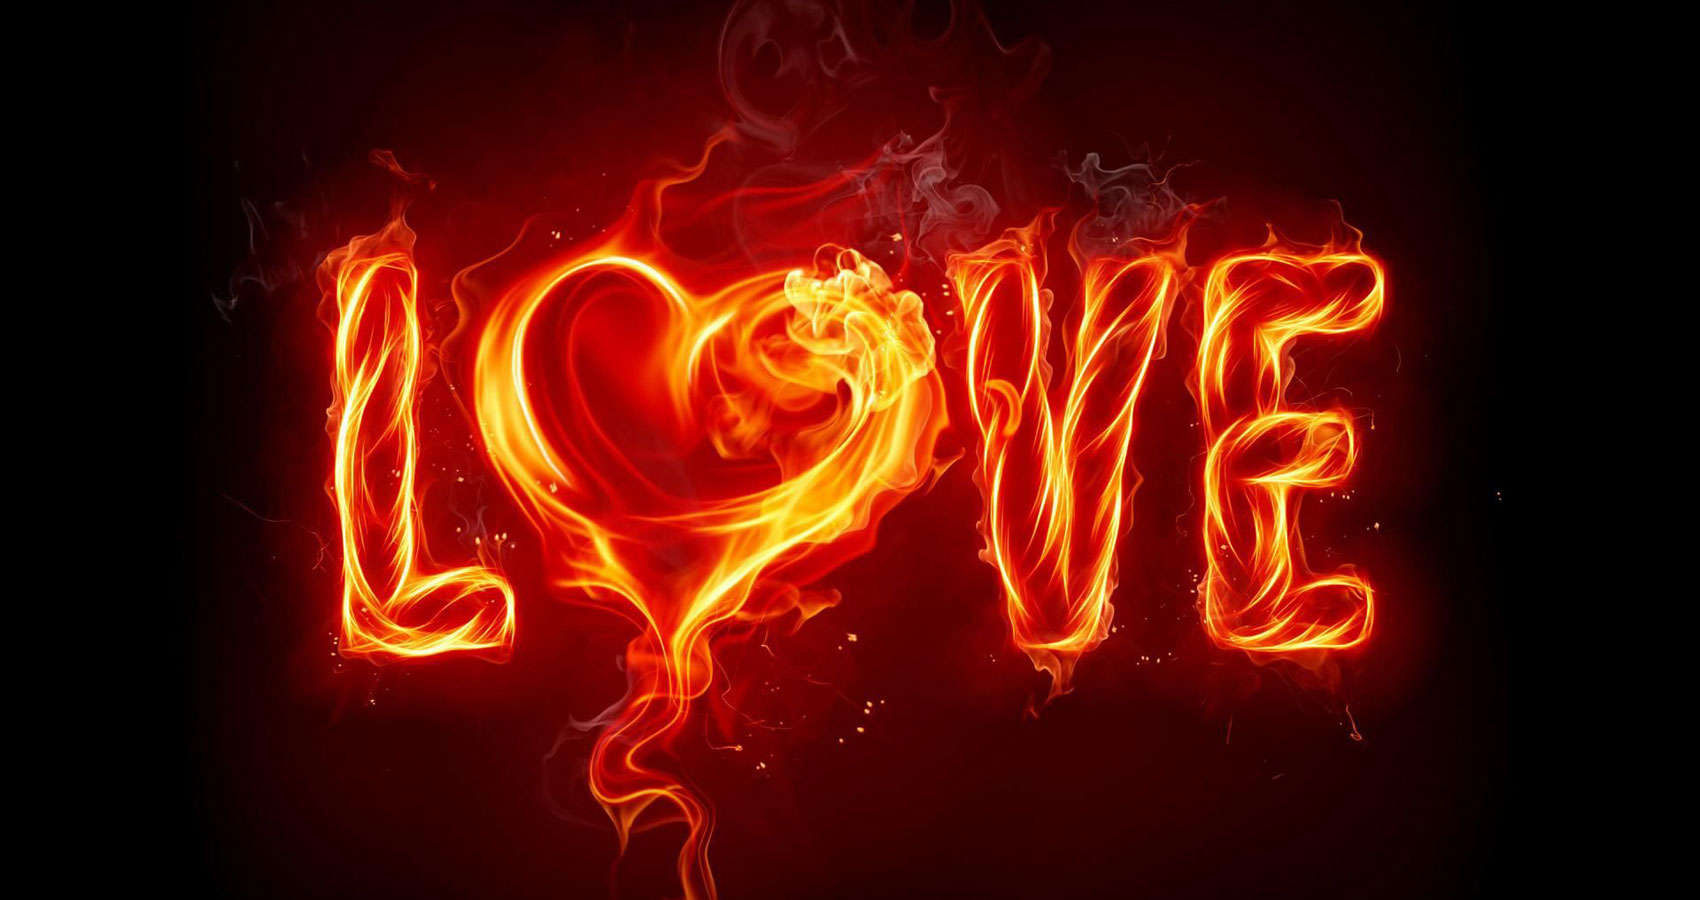 Love - The Spiritual Facet of Virtue, by Ashutosh Gupta at Spillwords.com